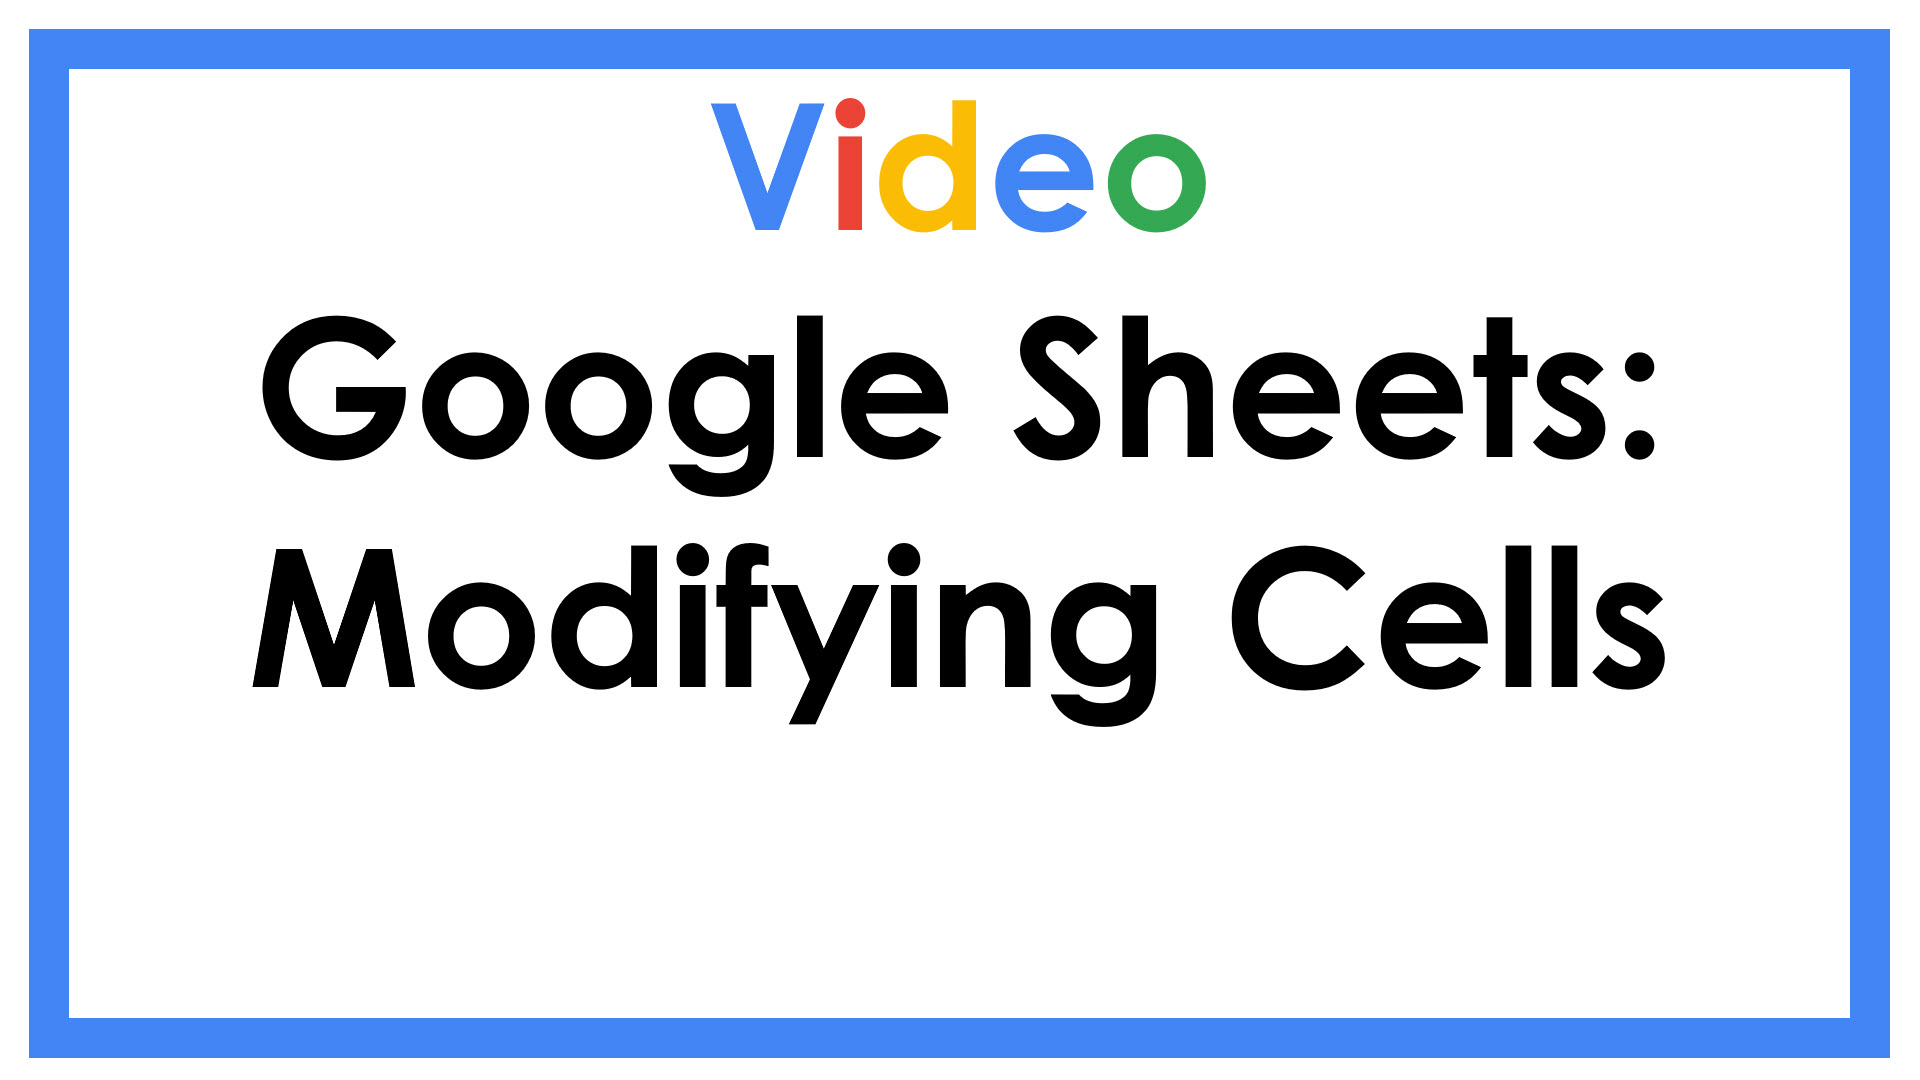 Google Sheets: Modifying Cells